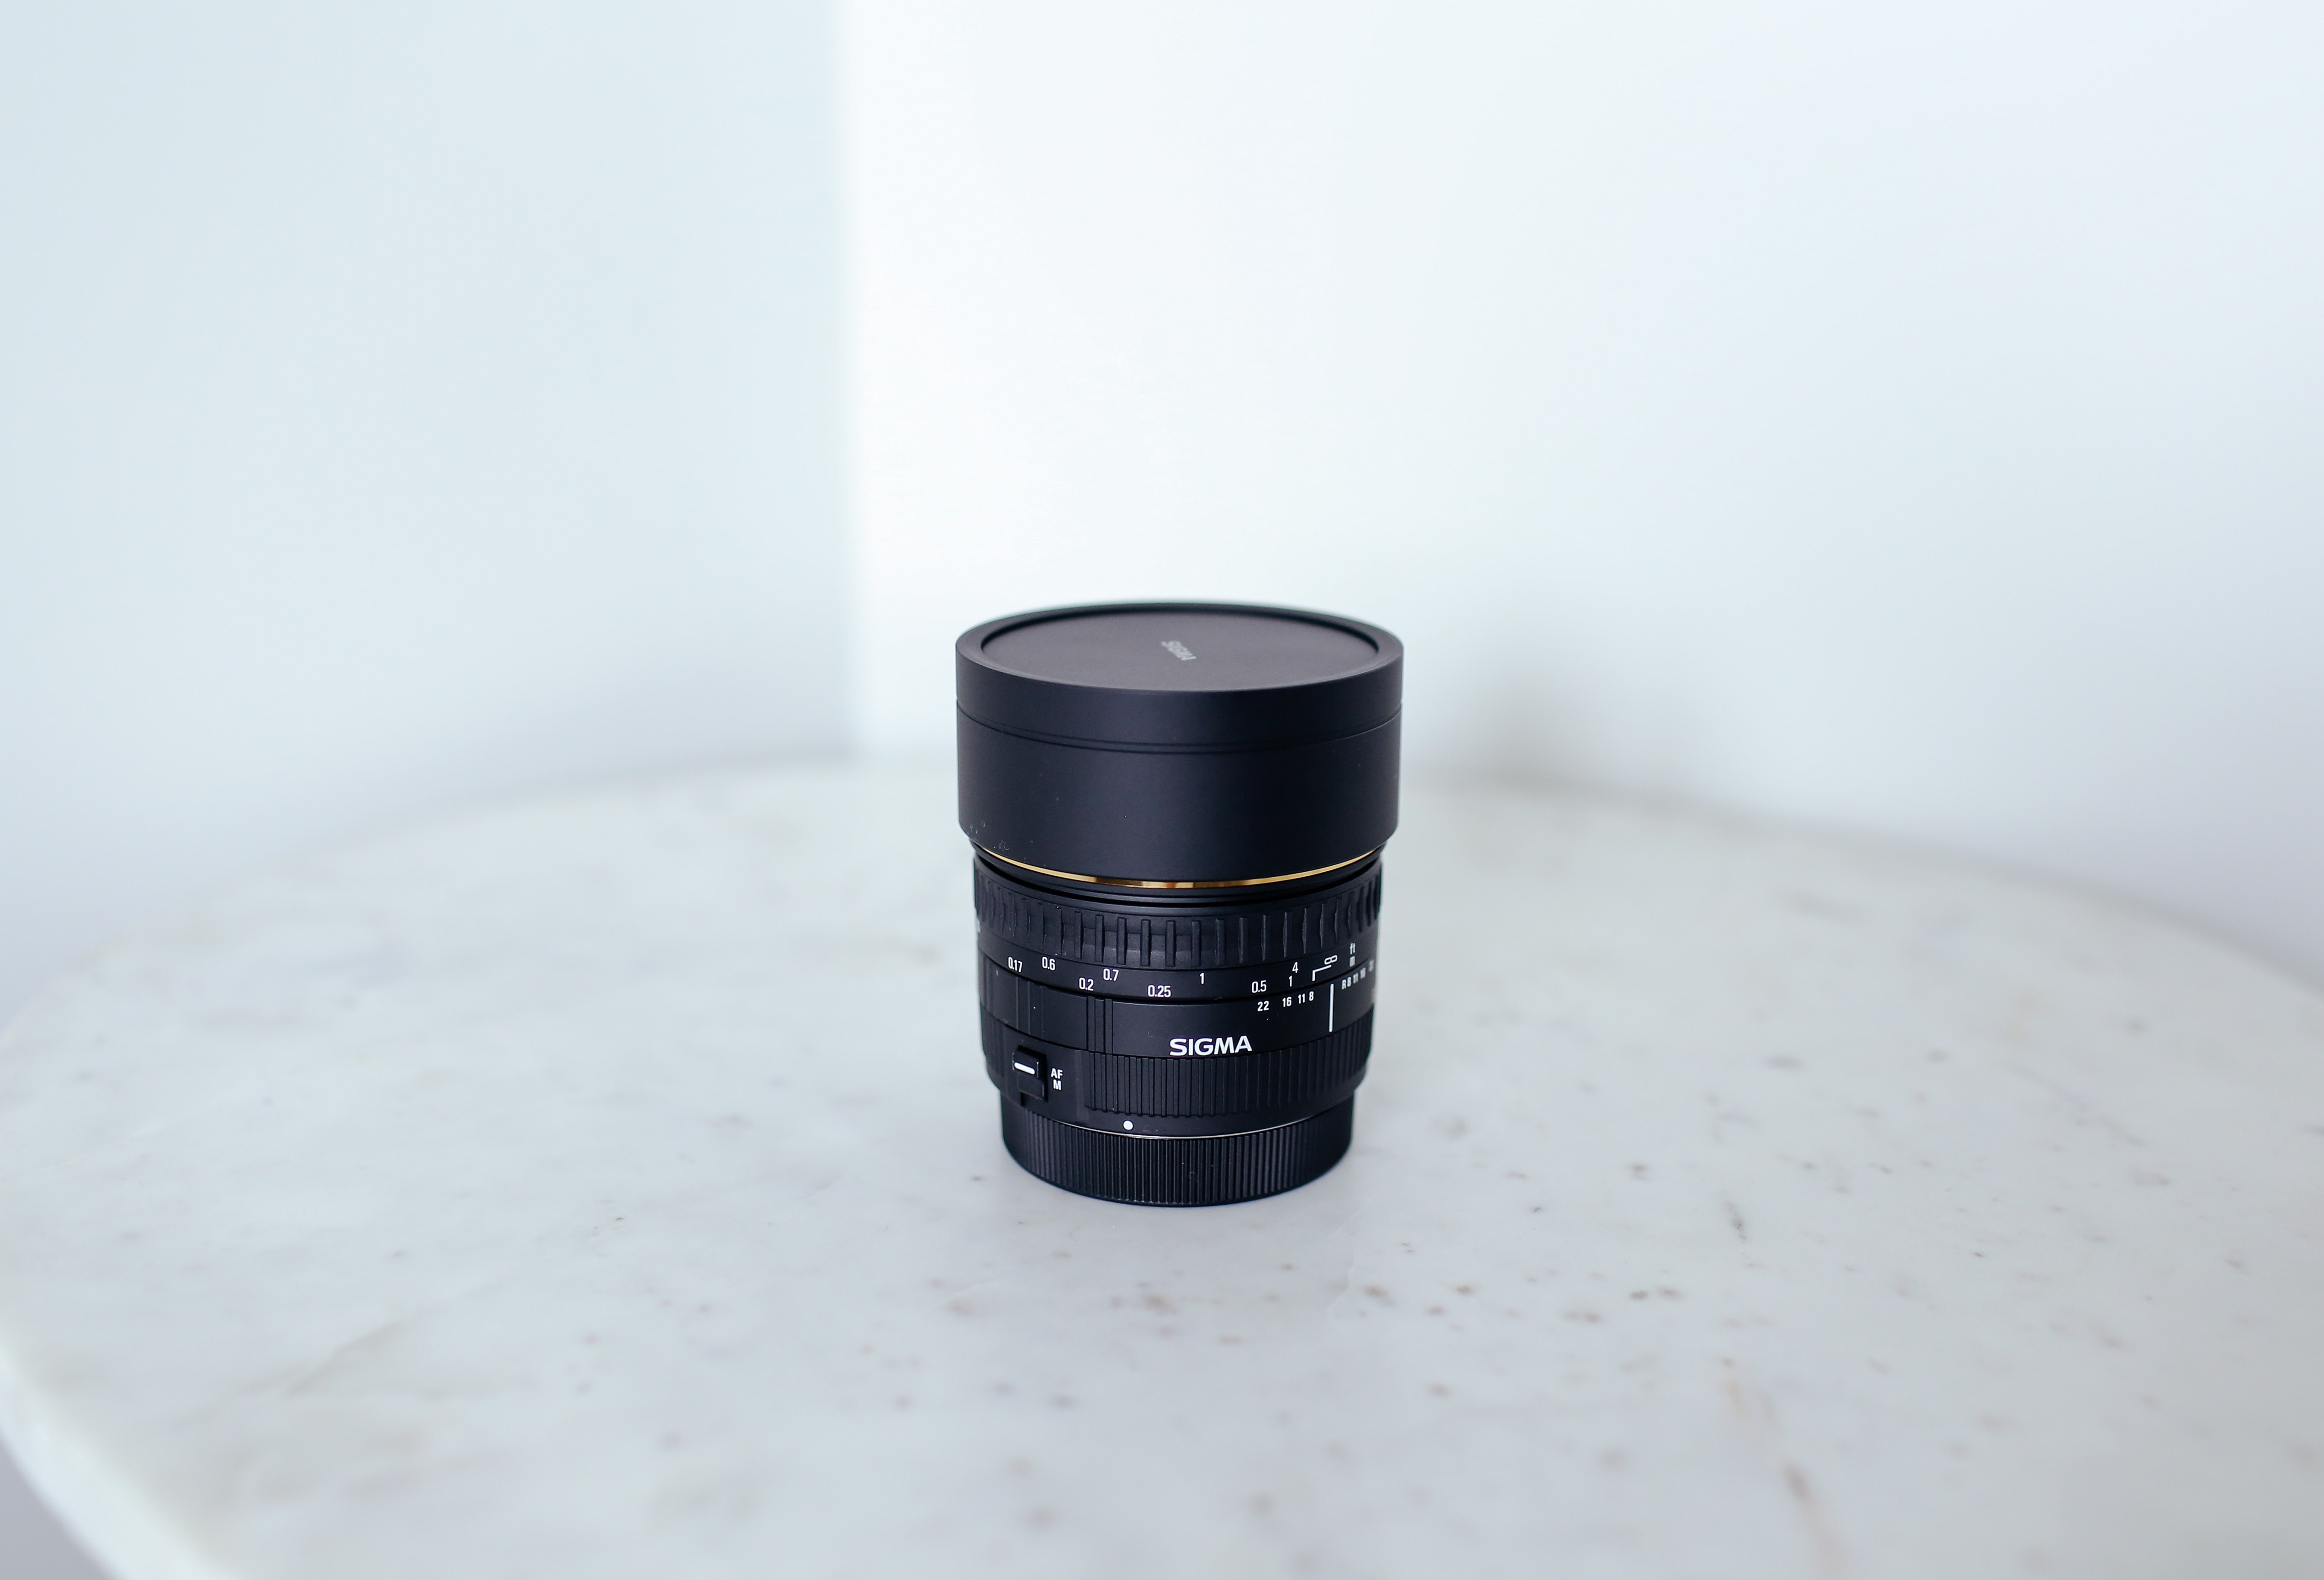 camera lens on table